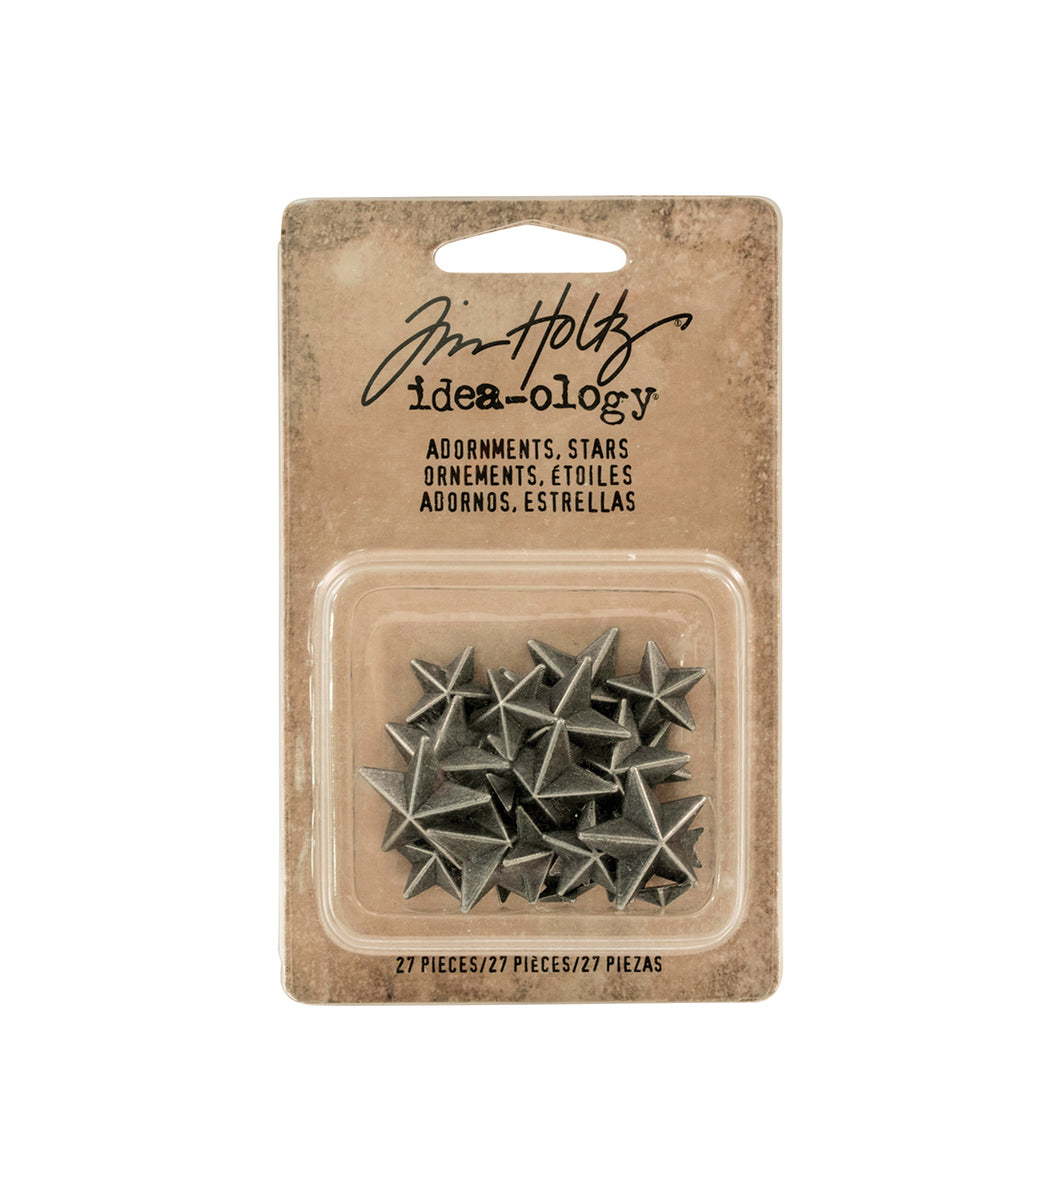 Tim Holtz Idea-ology- Adornments, stars (TH93562)